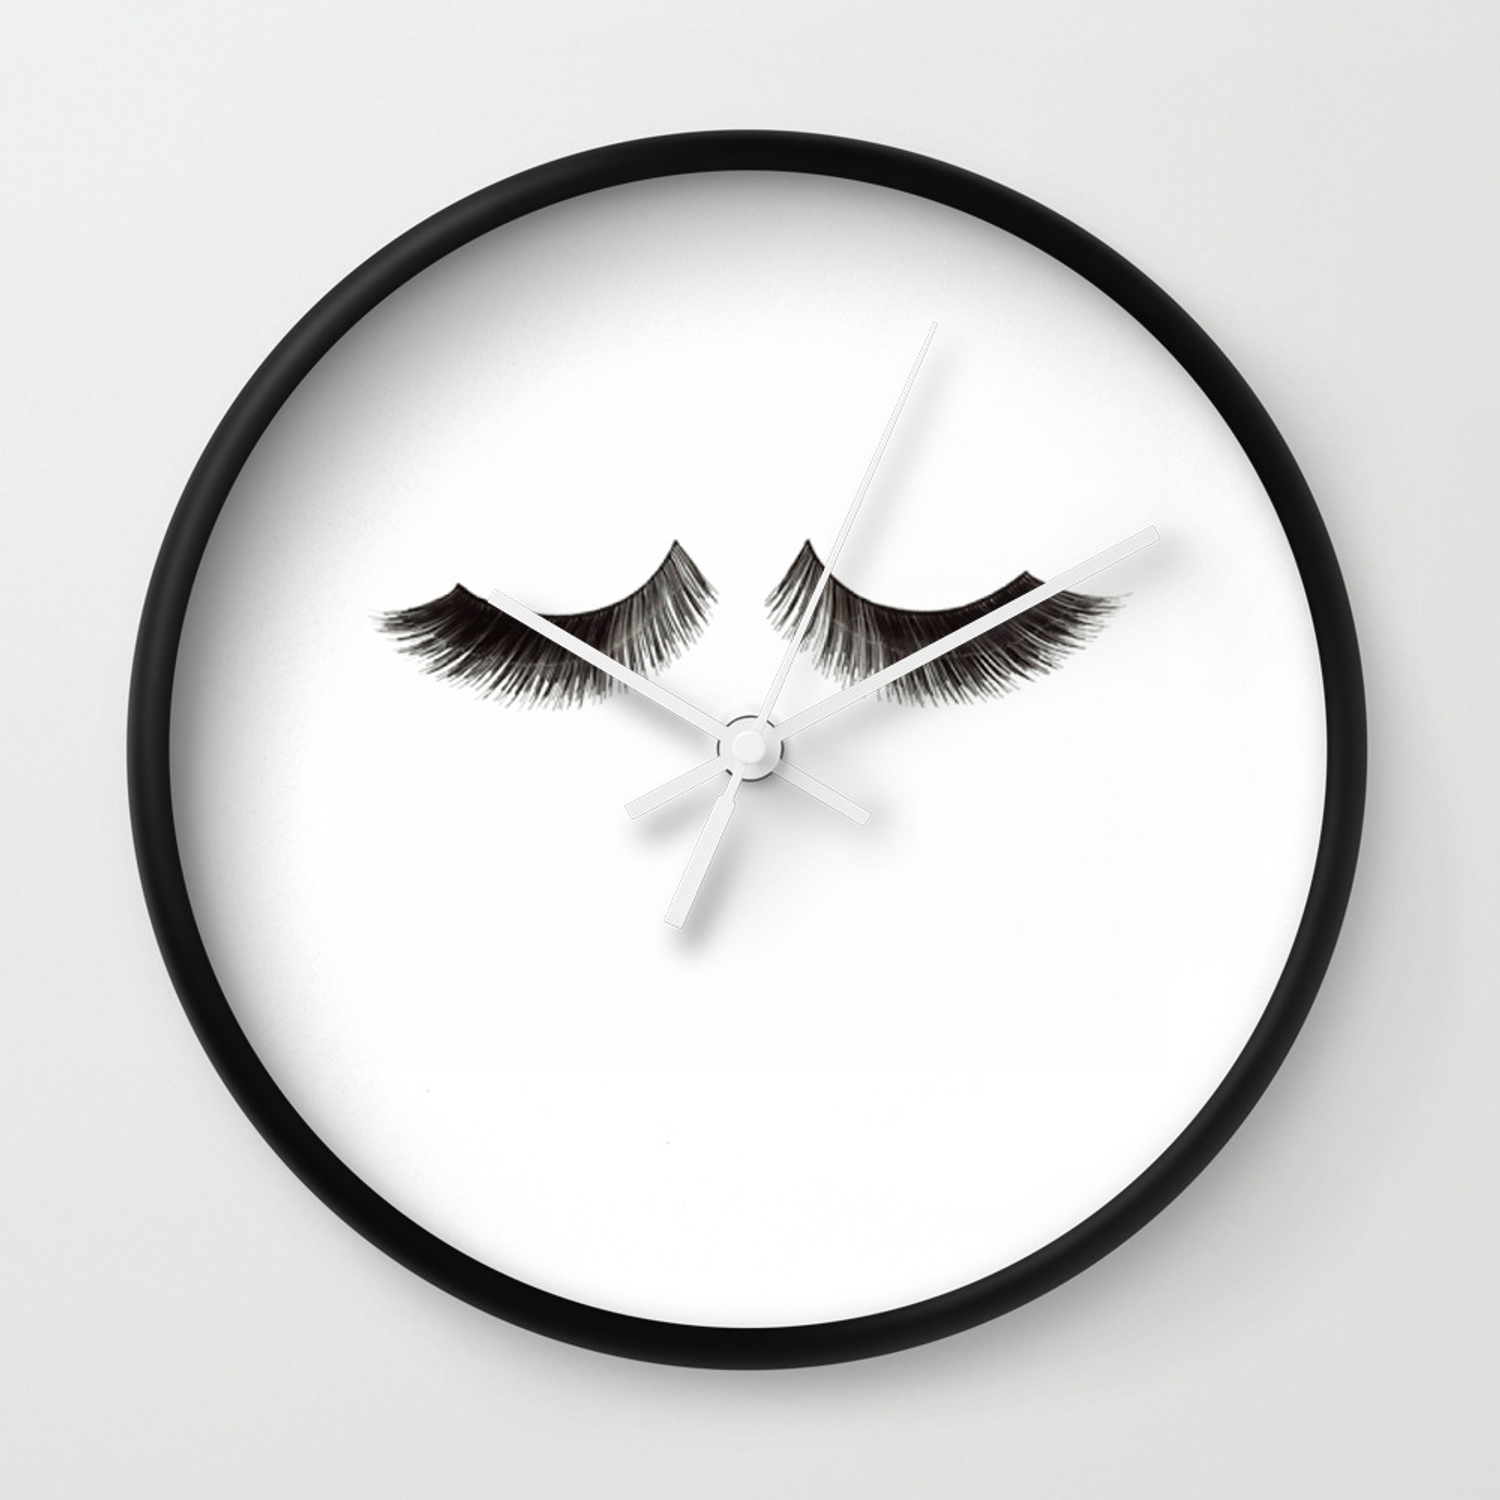 photograph relating to Printable Clocks known as Make-up Print Printable Artwork Make-up Prices Make-up Poster Eyelashes Print Design Wall Artwork Type Wall Clock